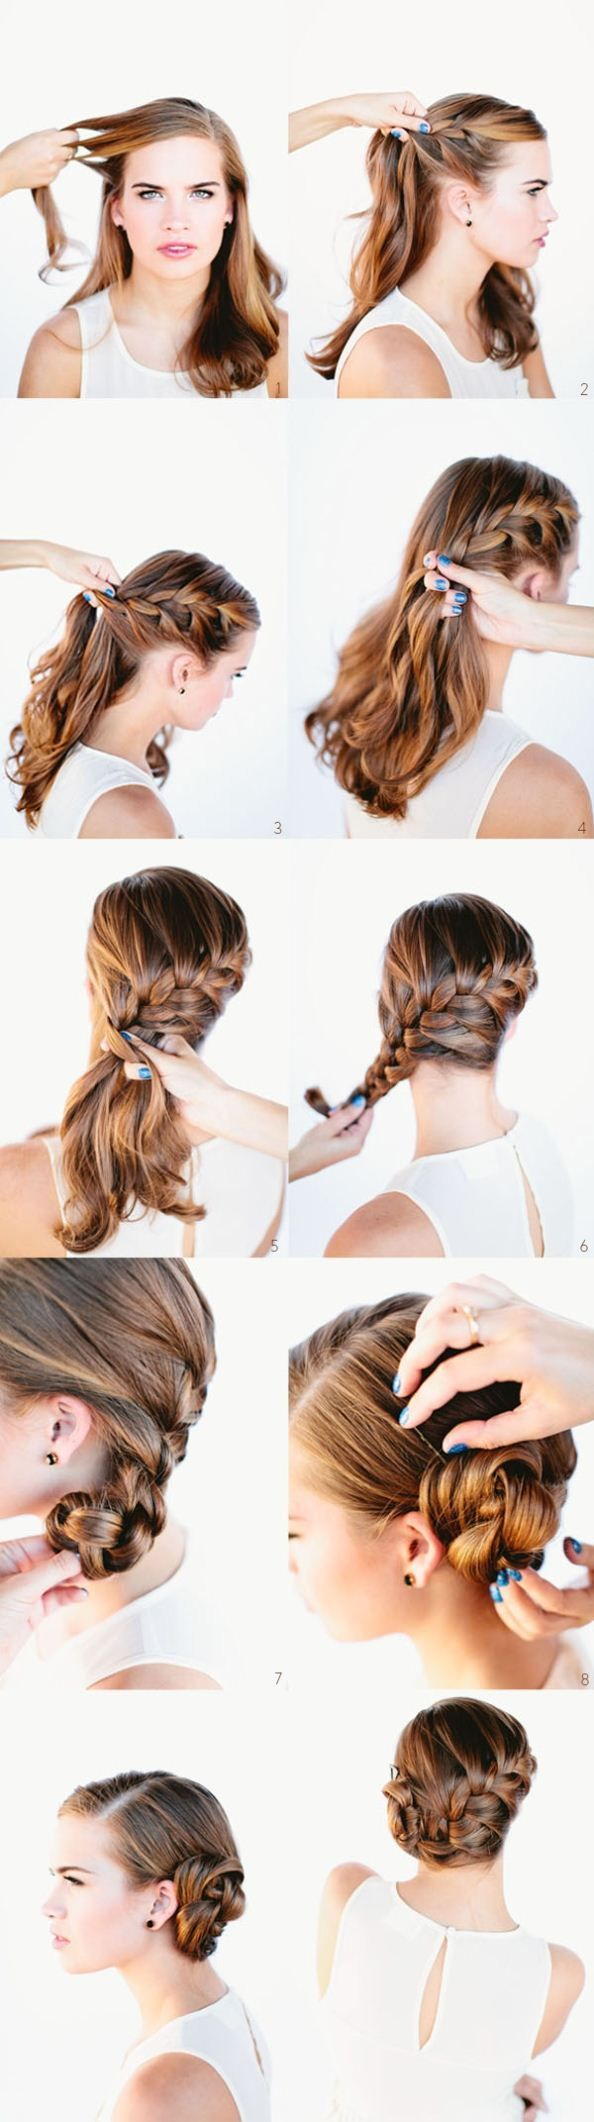 totally trying this when my hair gets long enough and I have somewhere fun to go!!!